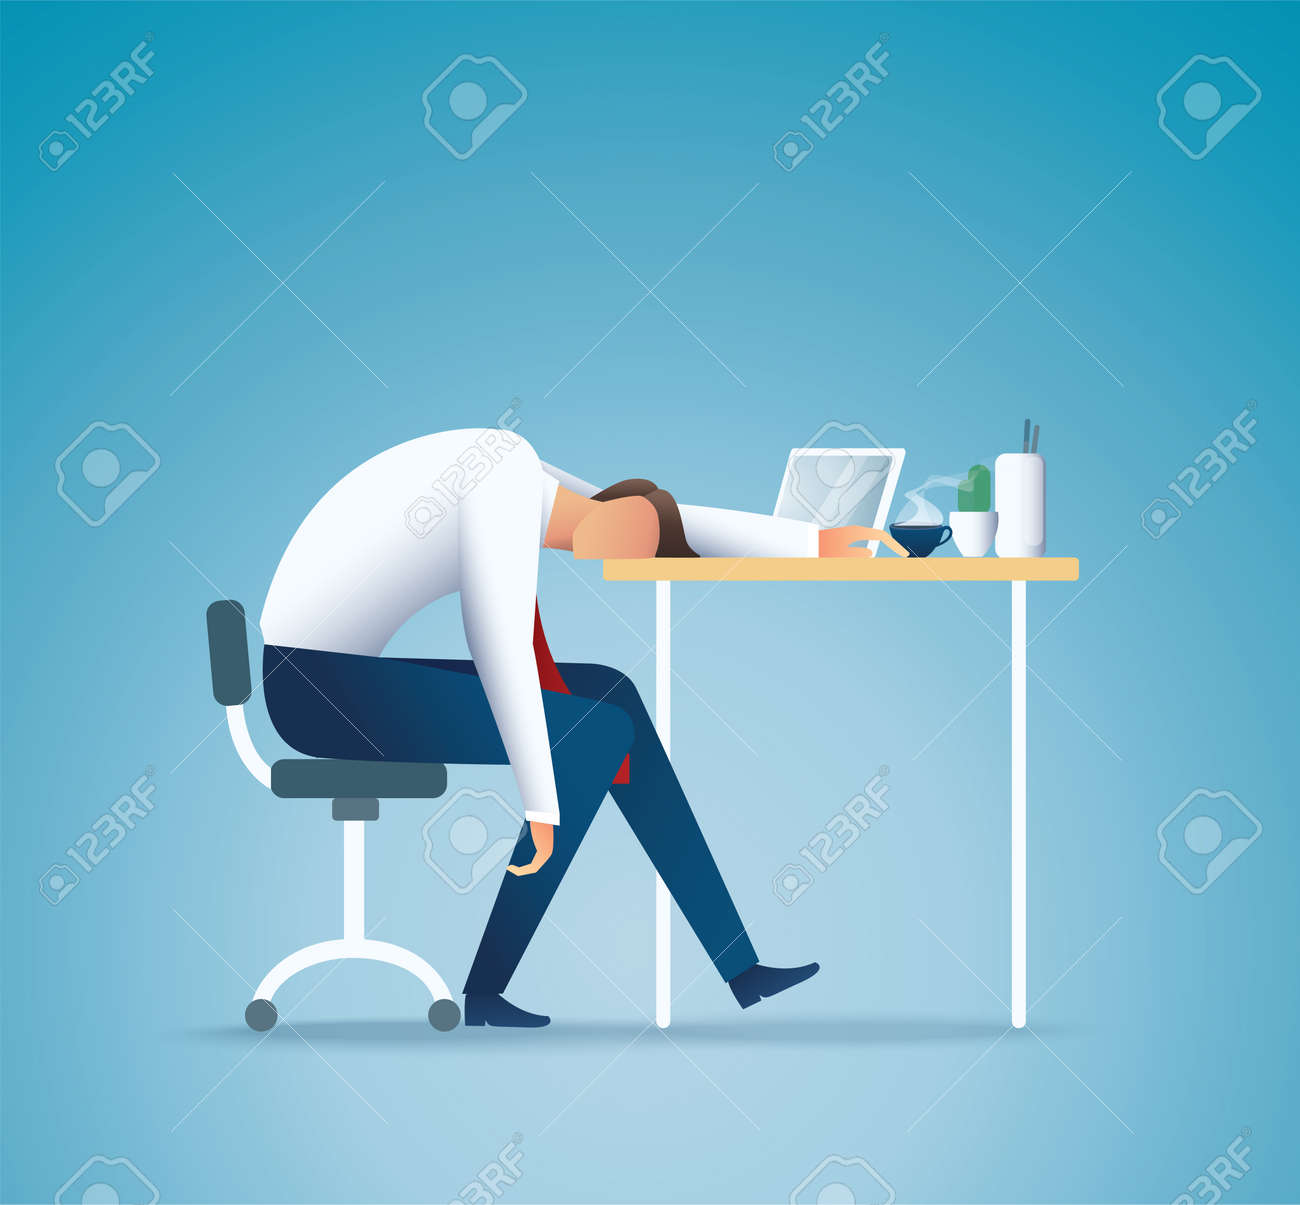 Sleeping at work. Tired business man. overworking concept vector illustration EPS10 - 131458487